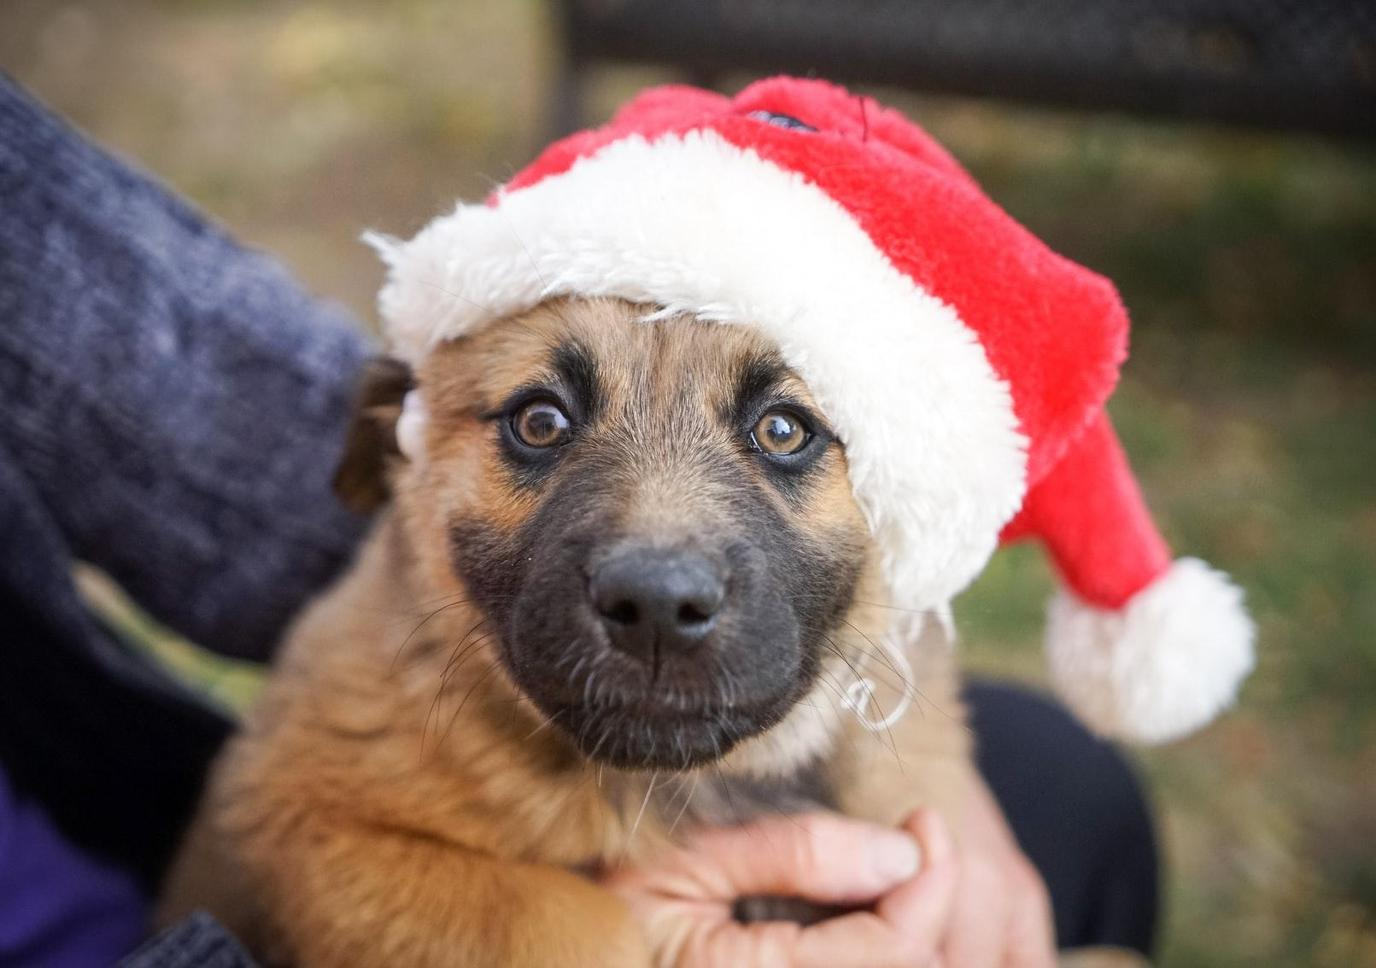 Dog in Santa hat grins for photoshoot.